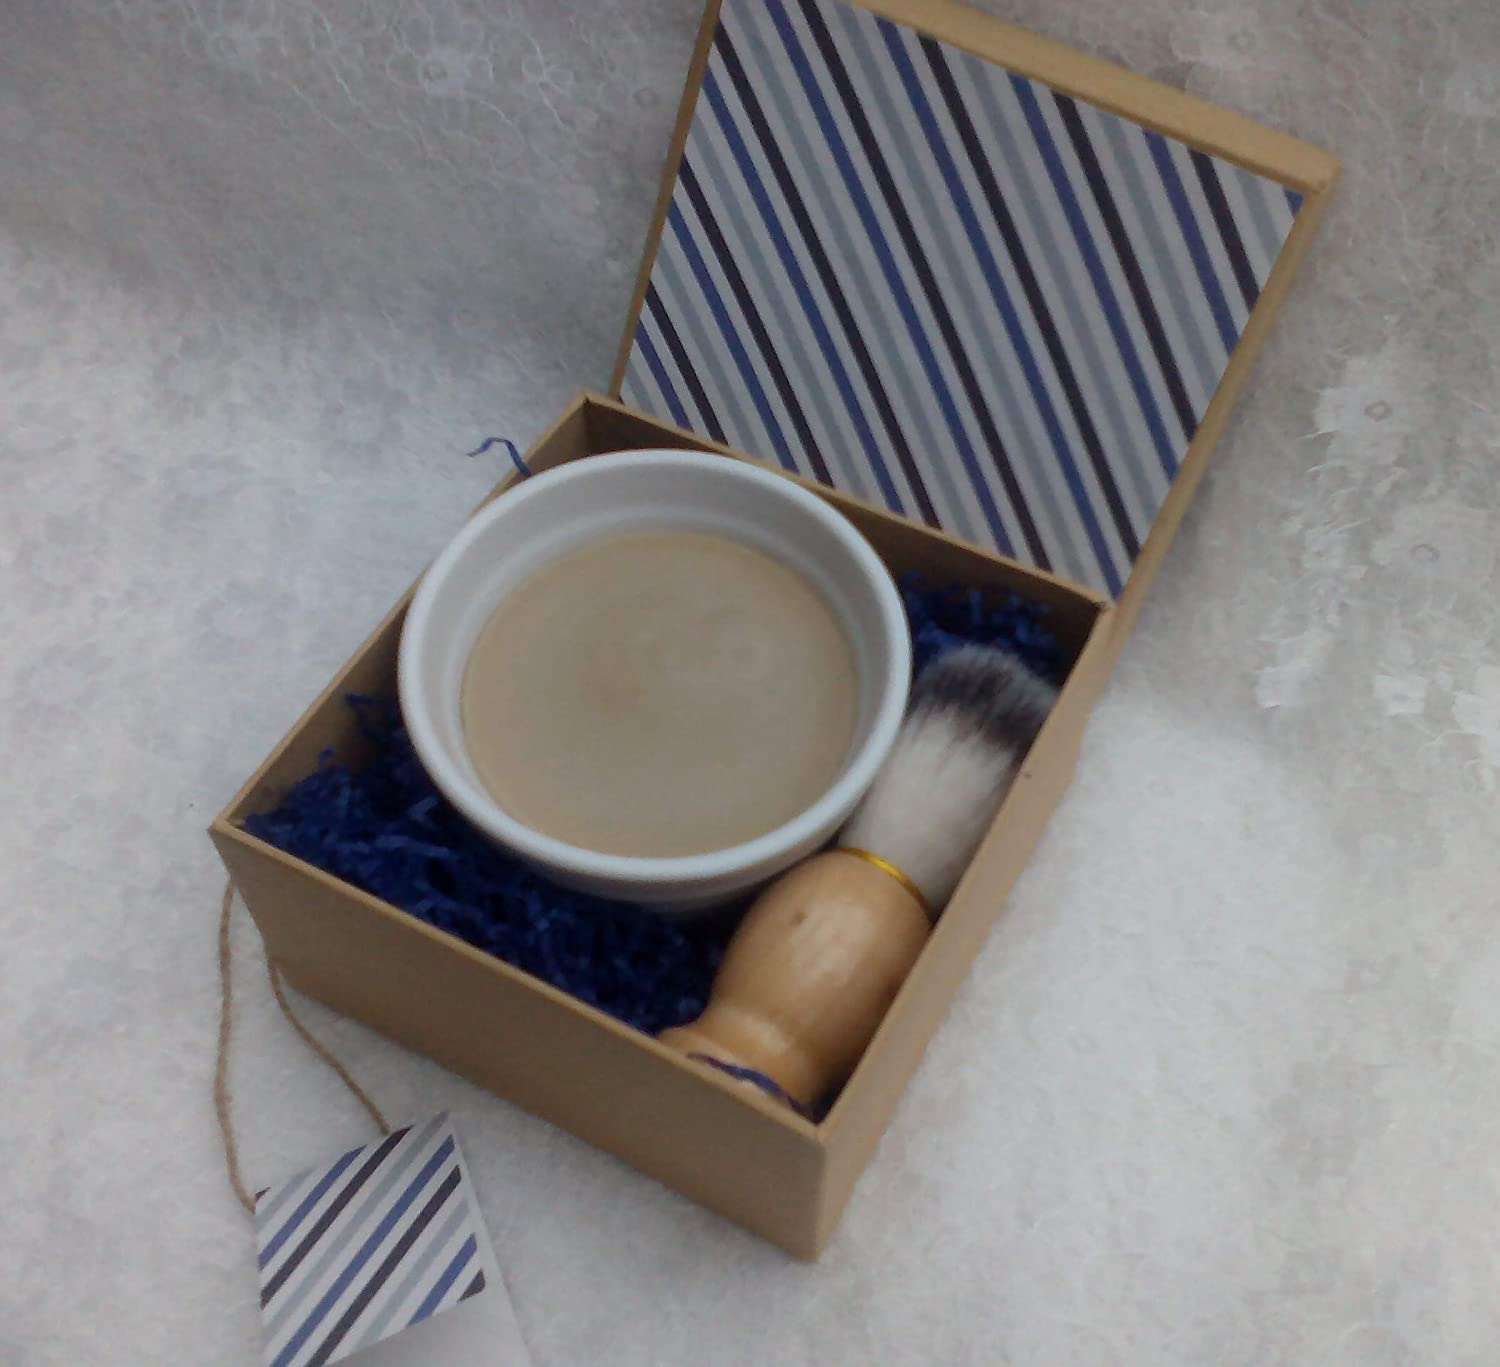 Sandalwood Goats Milk Shaving Soap and Brush Gift Box, by Tilly's Legacy. Traditional Barber's Tallow soap. Palm Oil and SL Free. Gift Boxed, no Plastic by Tilly' s Legacy. Traditional Barber' s Tallow soap. Palm Oil and SL Free. Gift Boxed